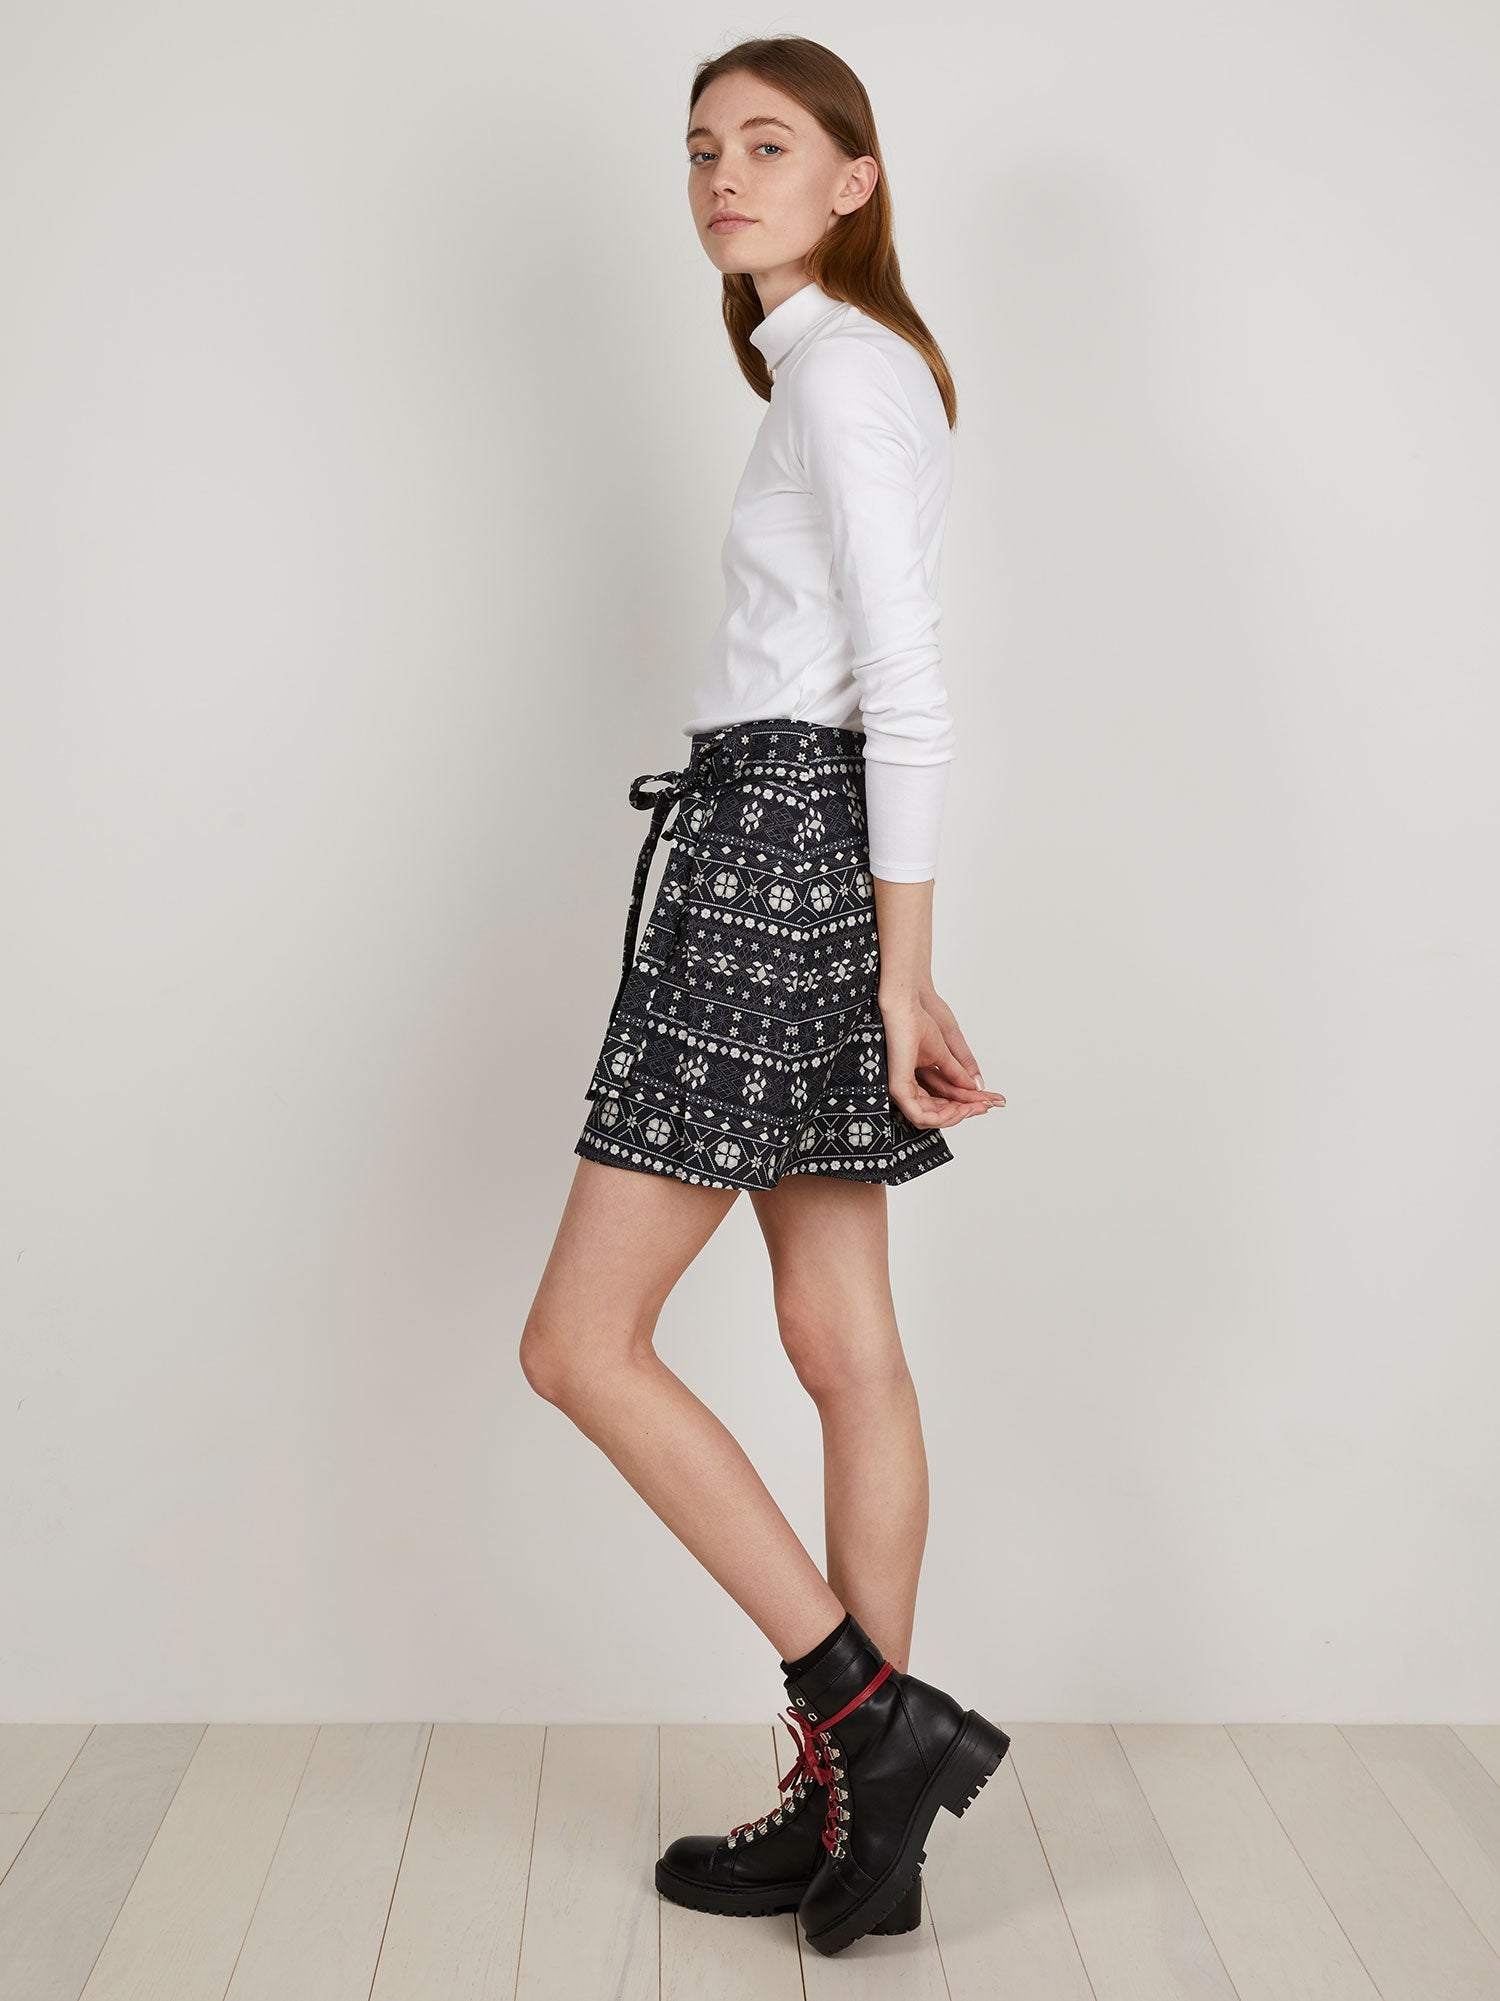 THE KIT's Wrap Kilt Skirt is a mid-thigh brushed cotton skirt side-front waist tie and cargo pocket with bold navy print black boots red laces